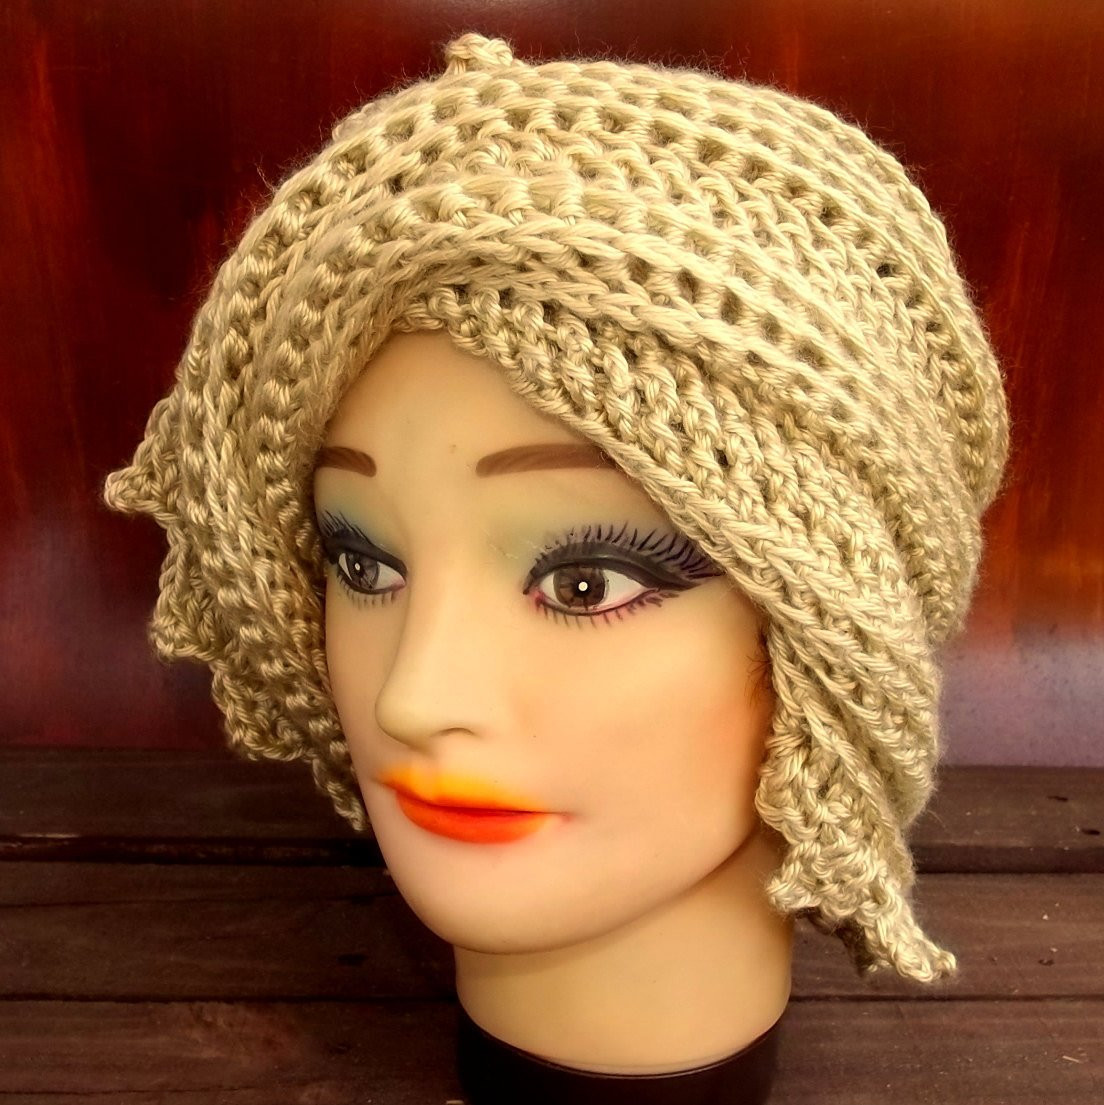 Unique Etsy Crochet and Knit Hats and Patterns Blog by